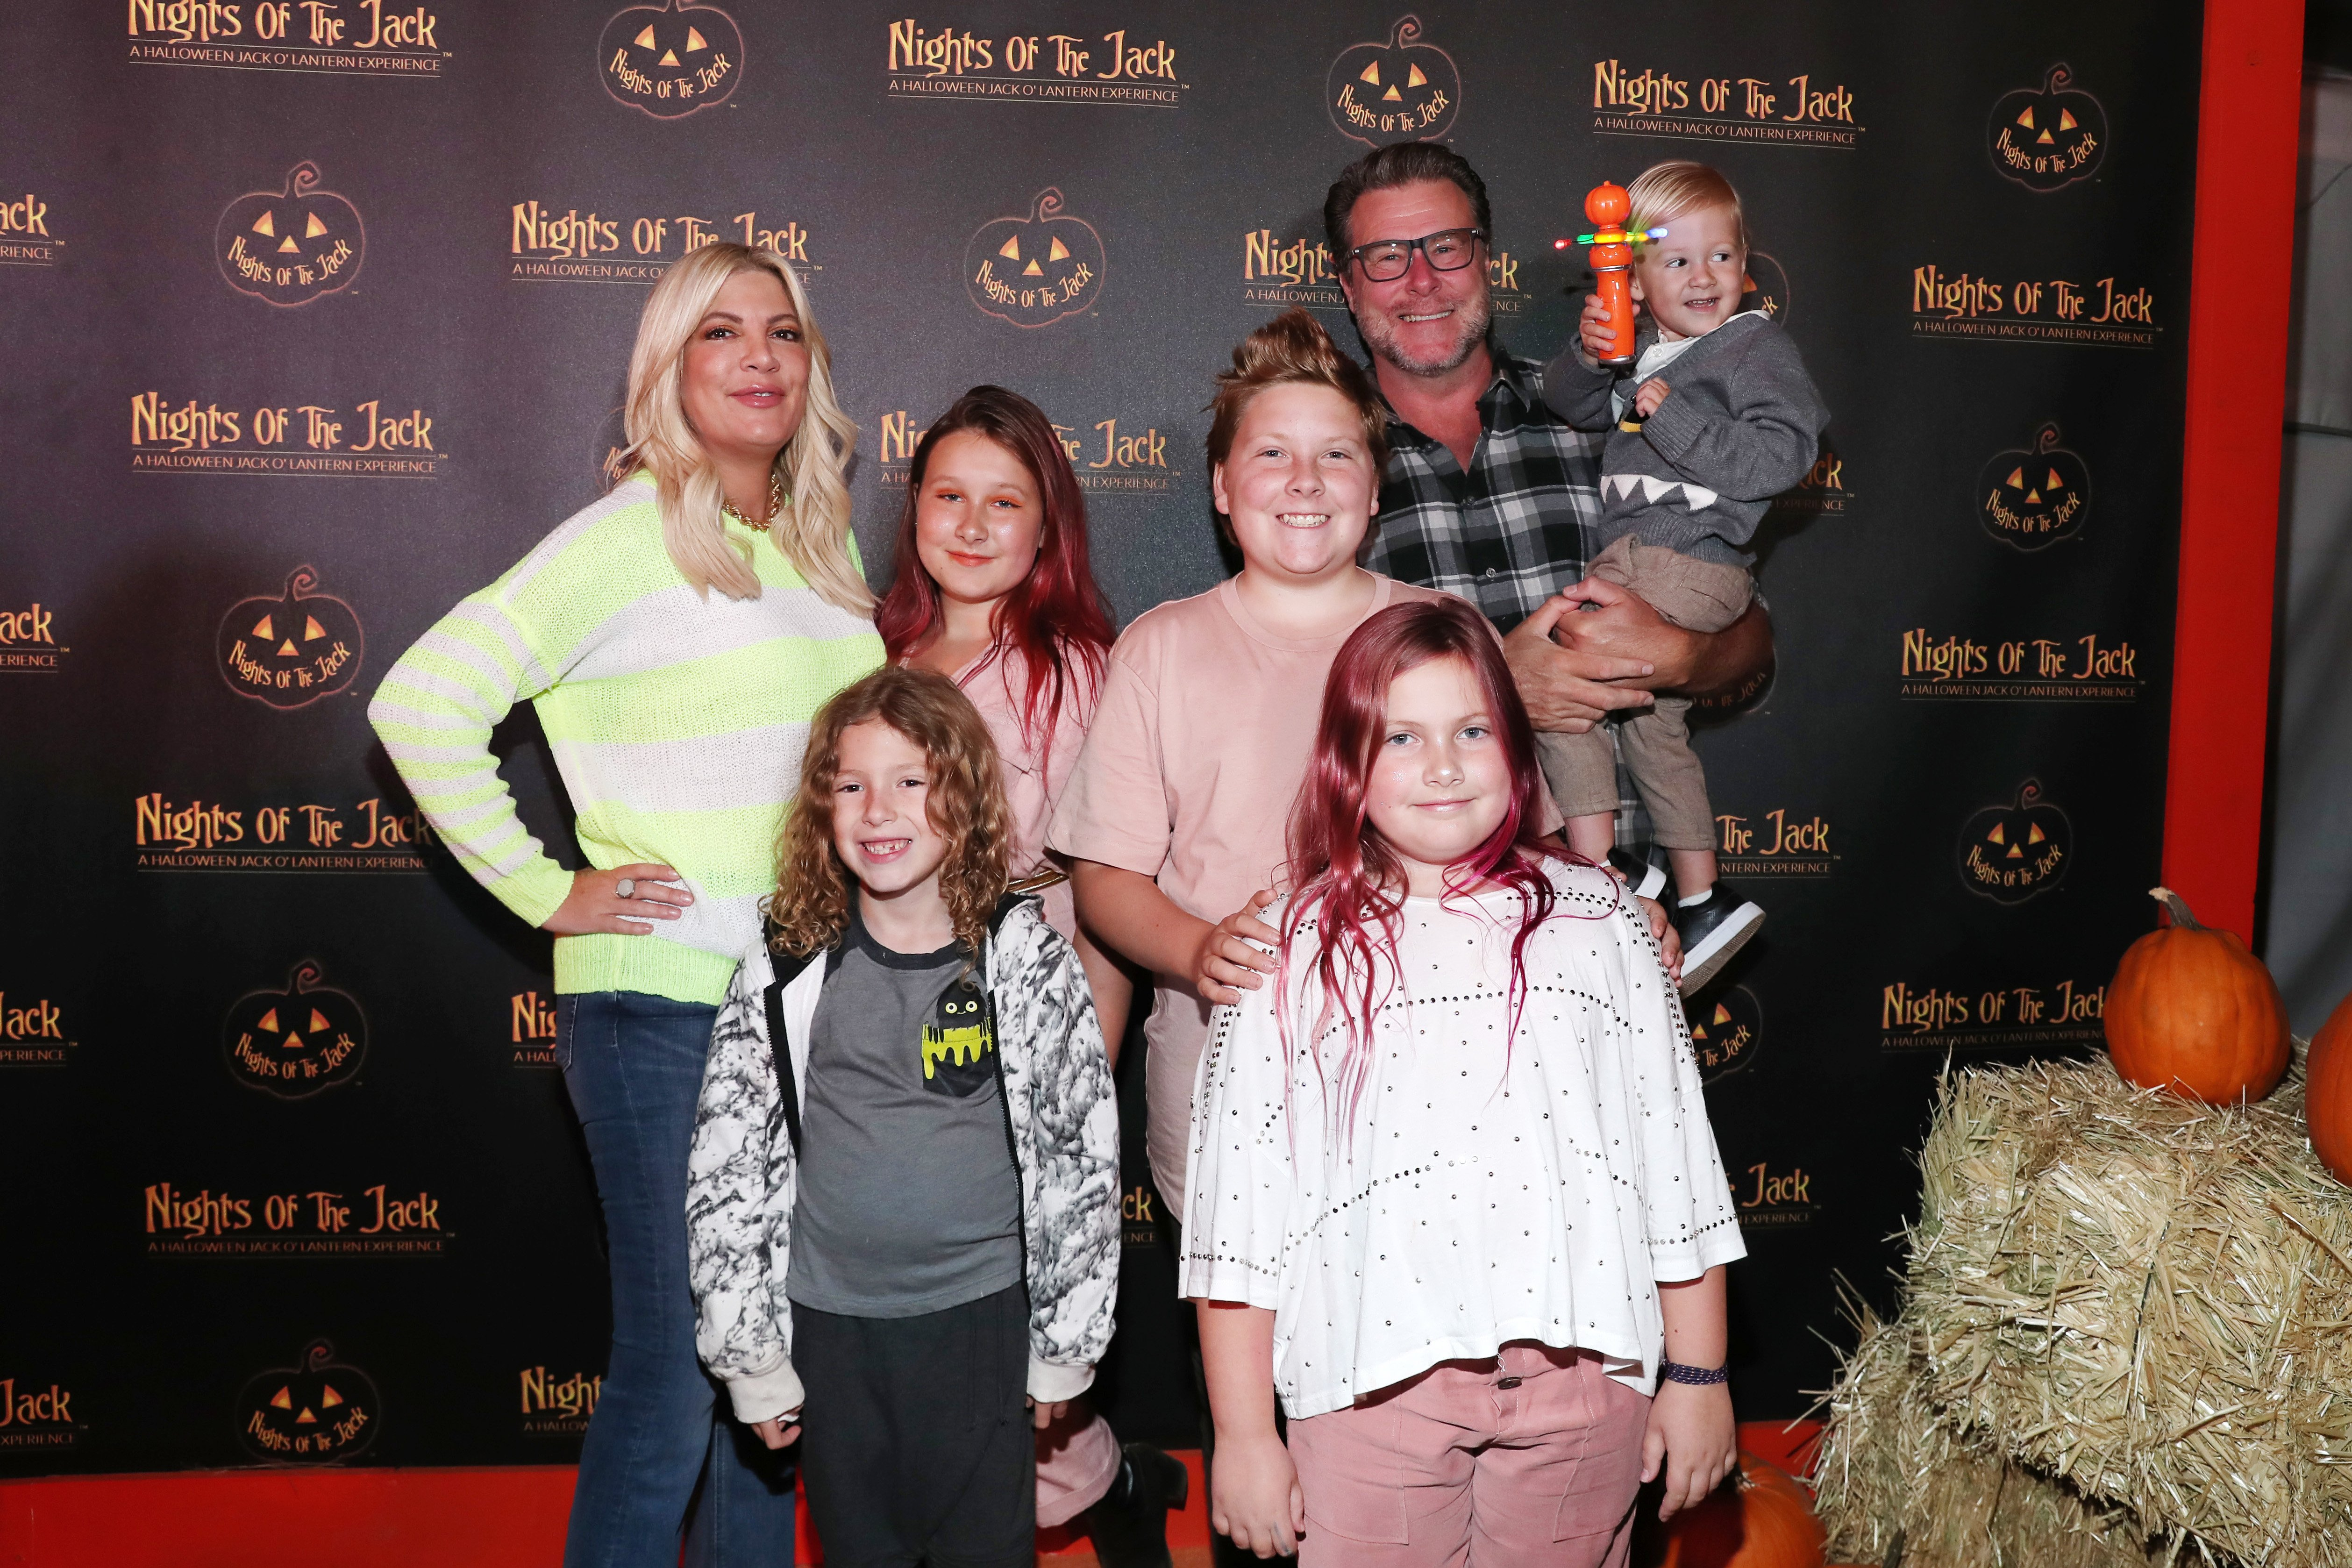 Tori Spelling  and Dean McDermott and family attend Nights of the Jack Friends & Family Night 2019 on October 02, 2019 in Calabasas, California. | Source: Getty Images.